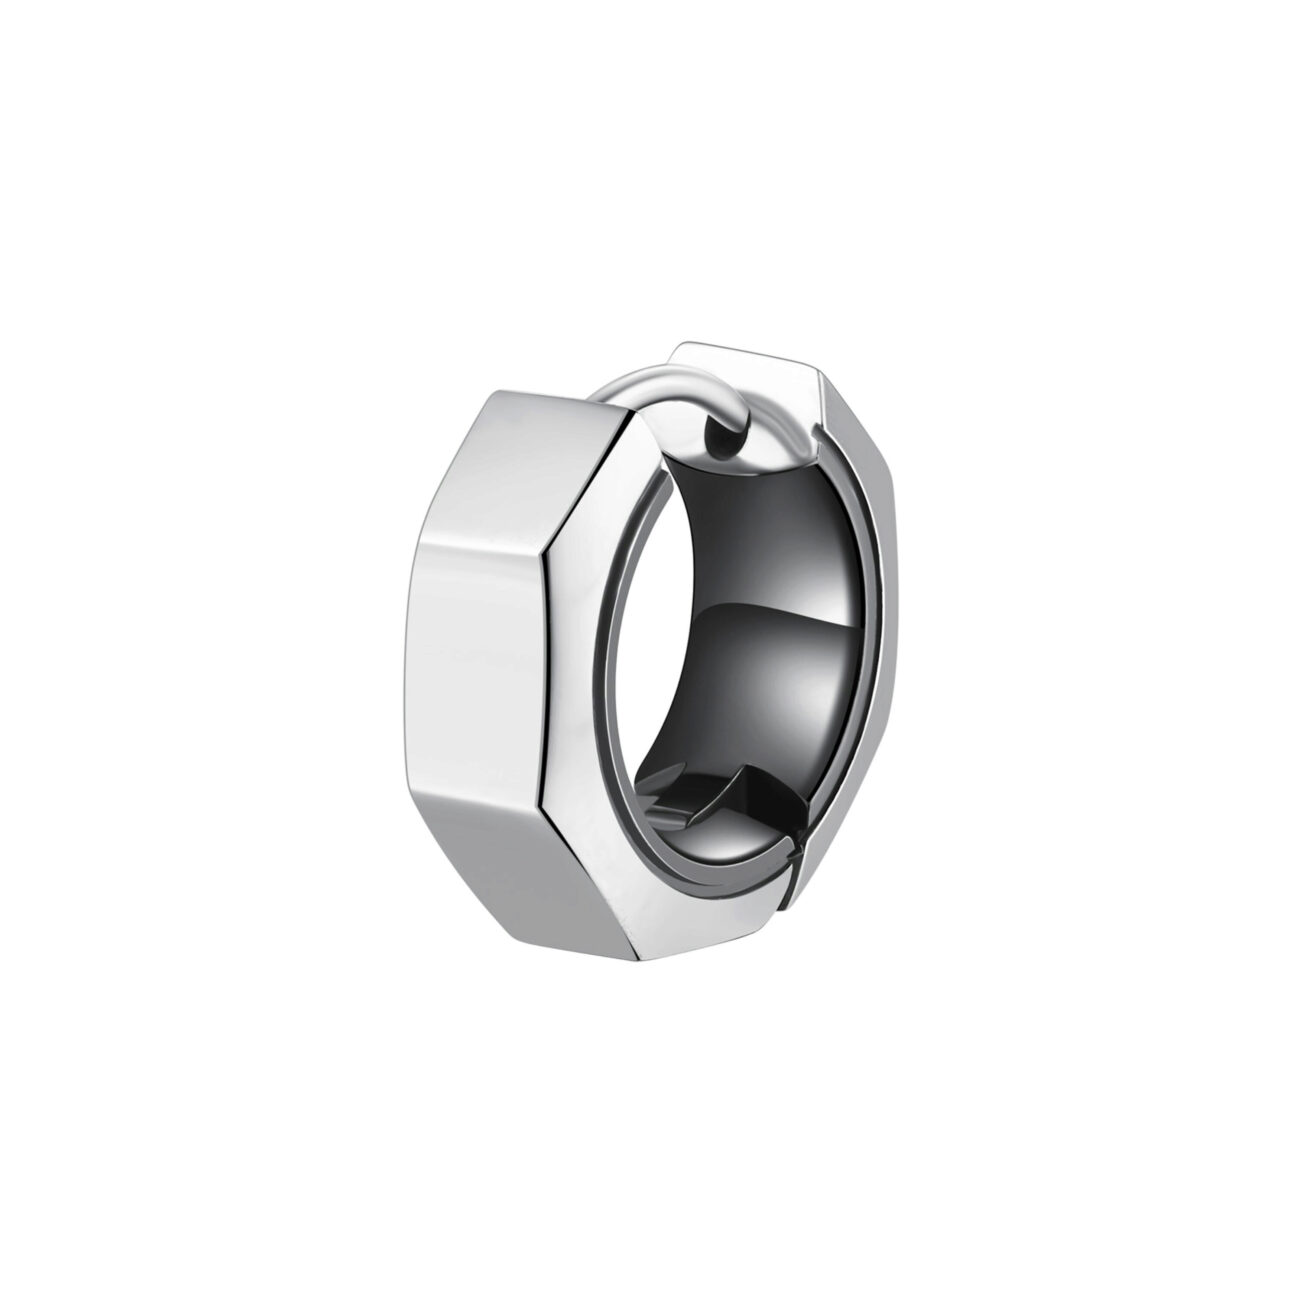 Single earring in 316L stainless steel bolt-shaped and gun finishes.